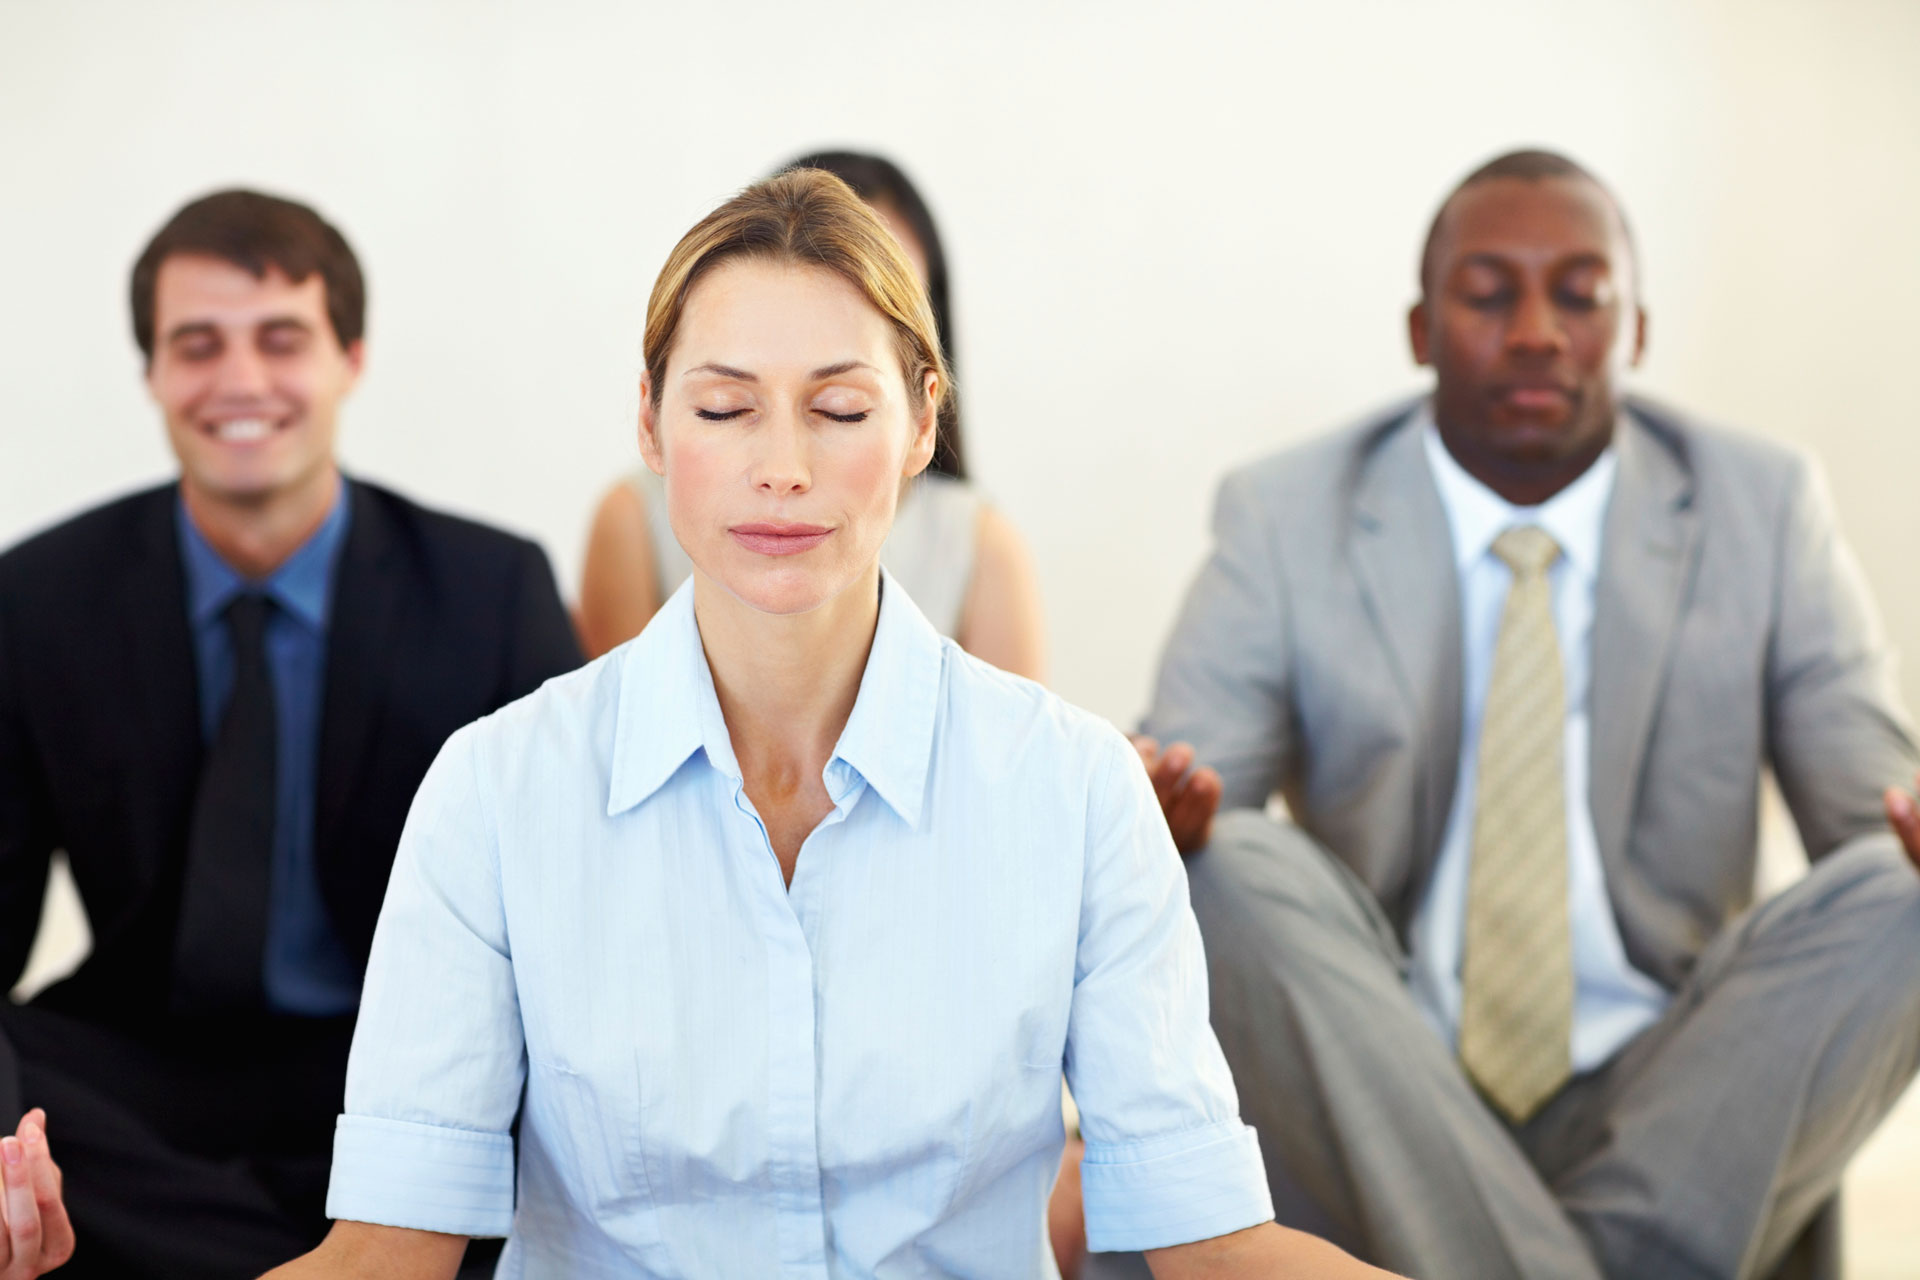 business-meditation-17659823_web